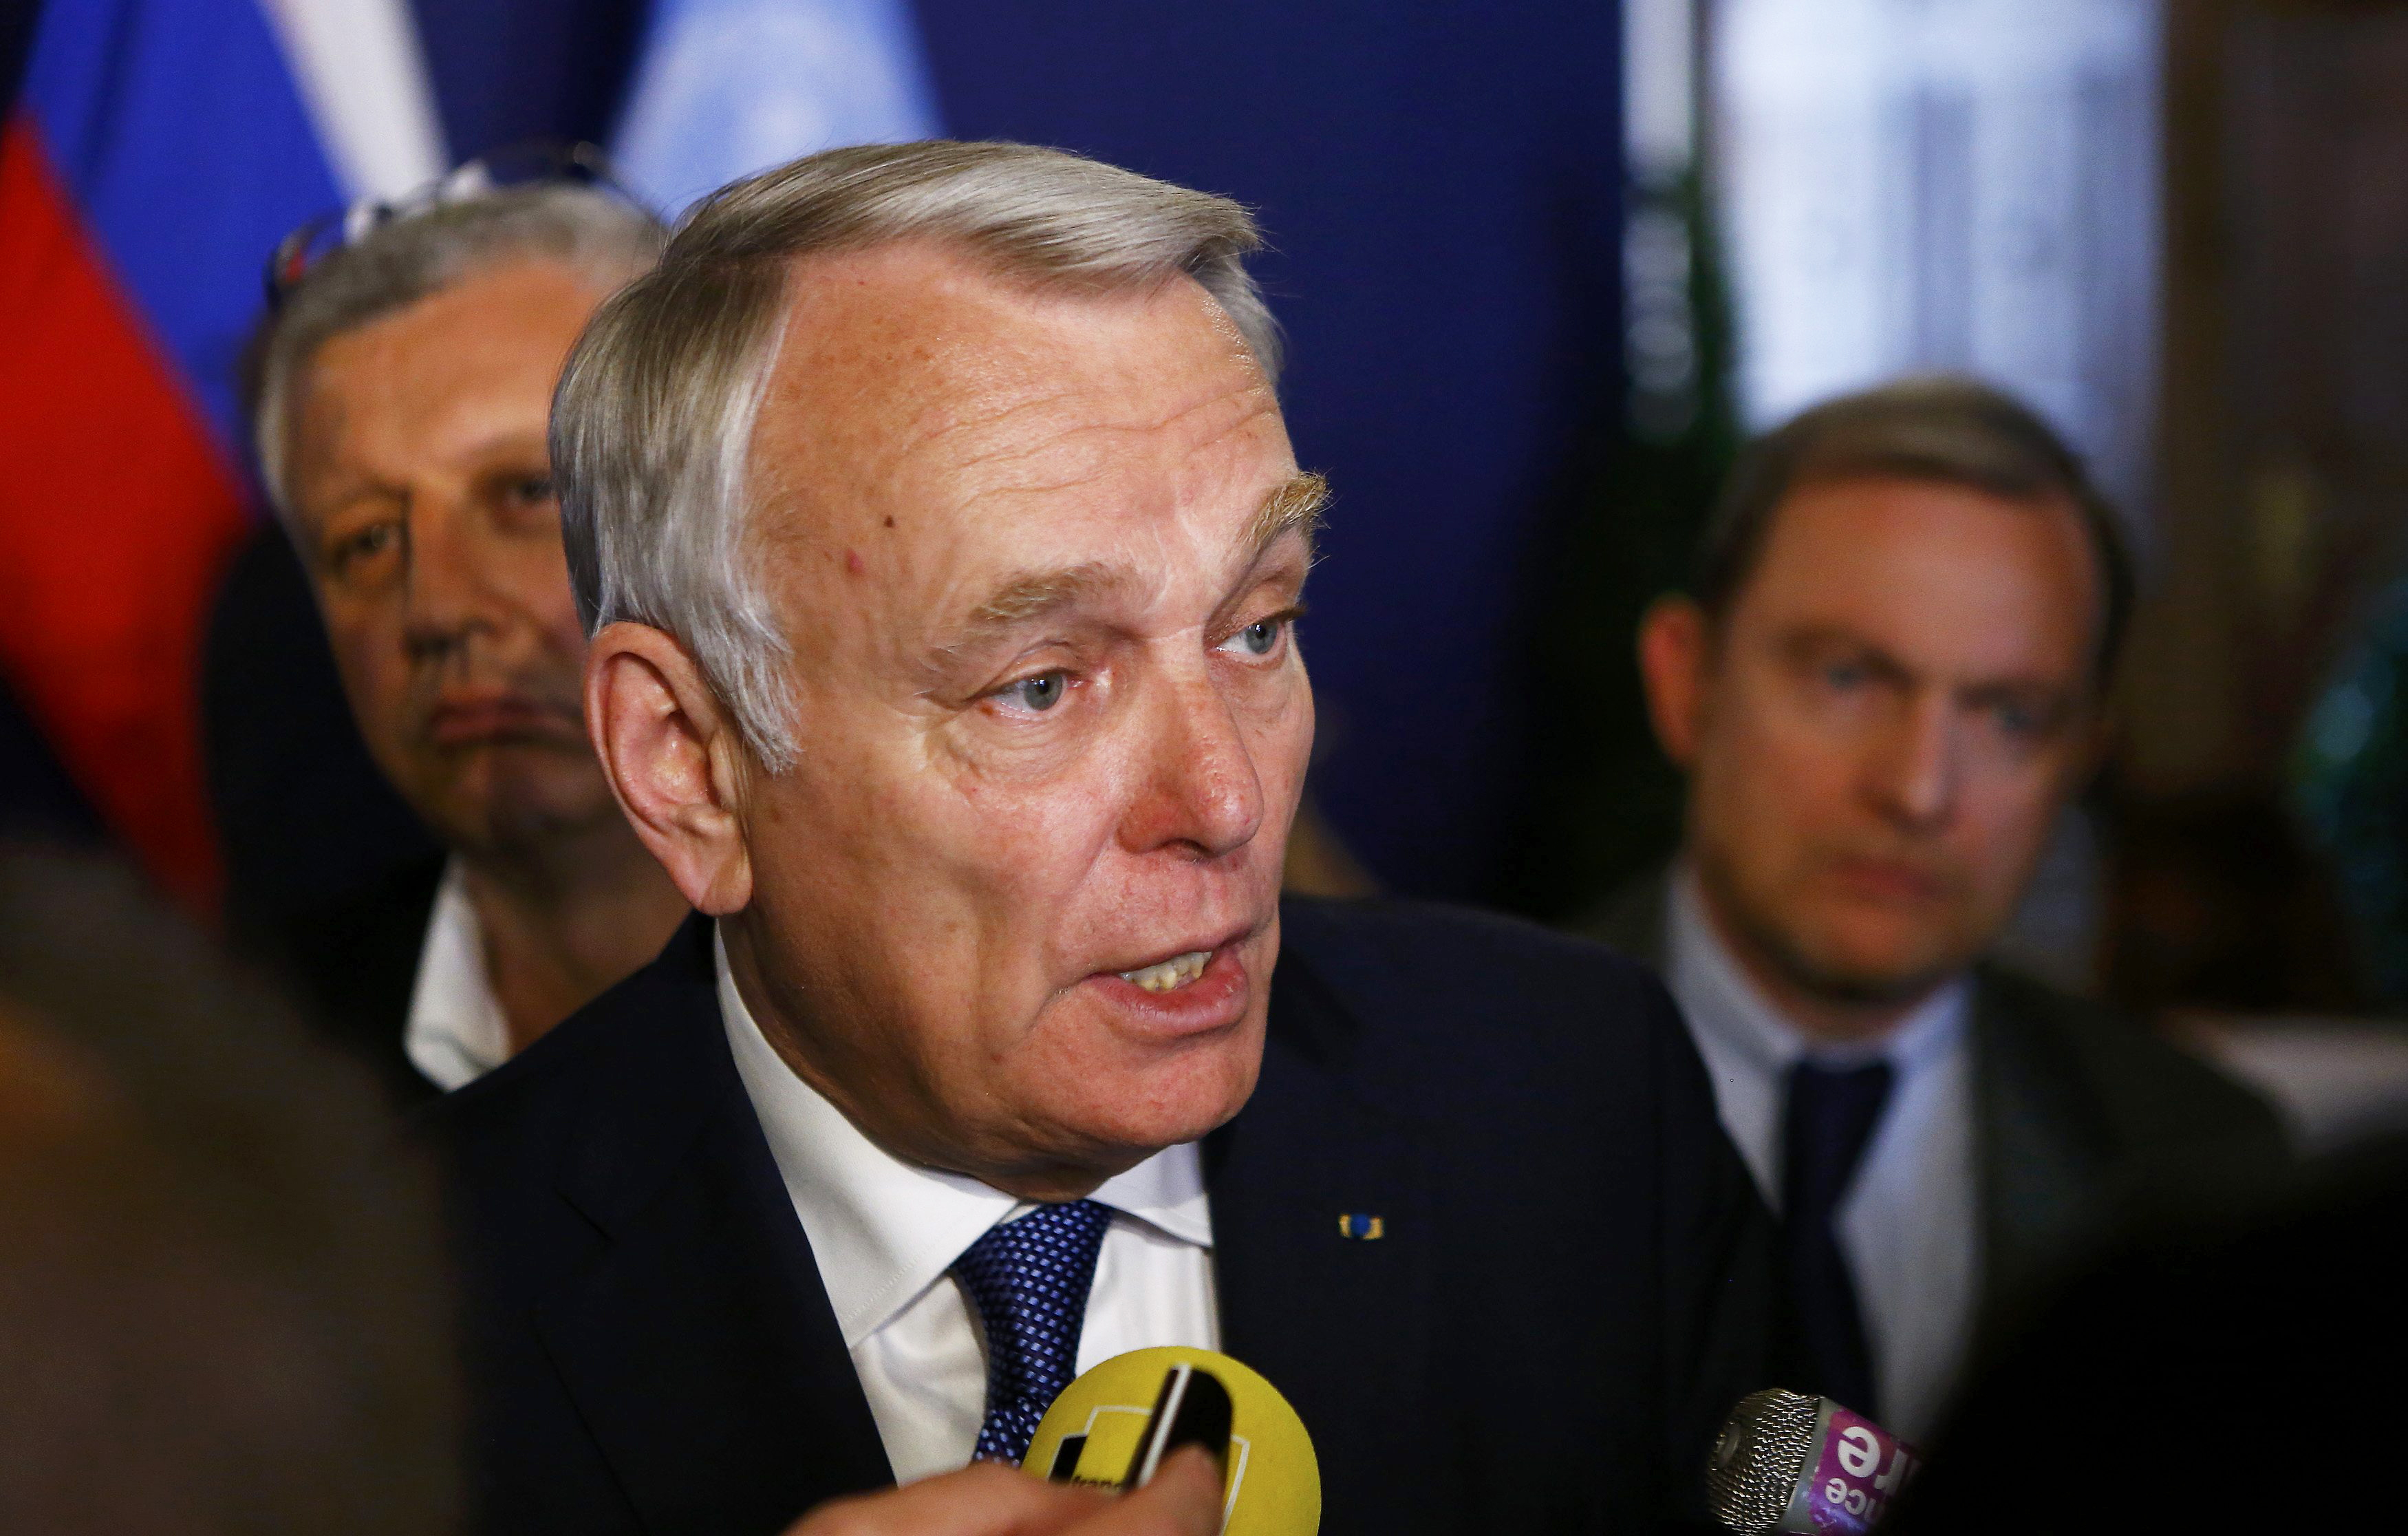 French Foreign Minister Jean-Marc Ayrault speaks to the media in Vienna, Austria, May 17, 2016.